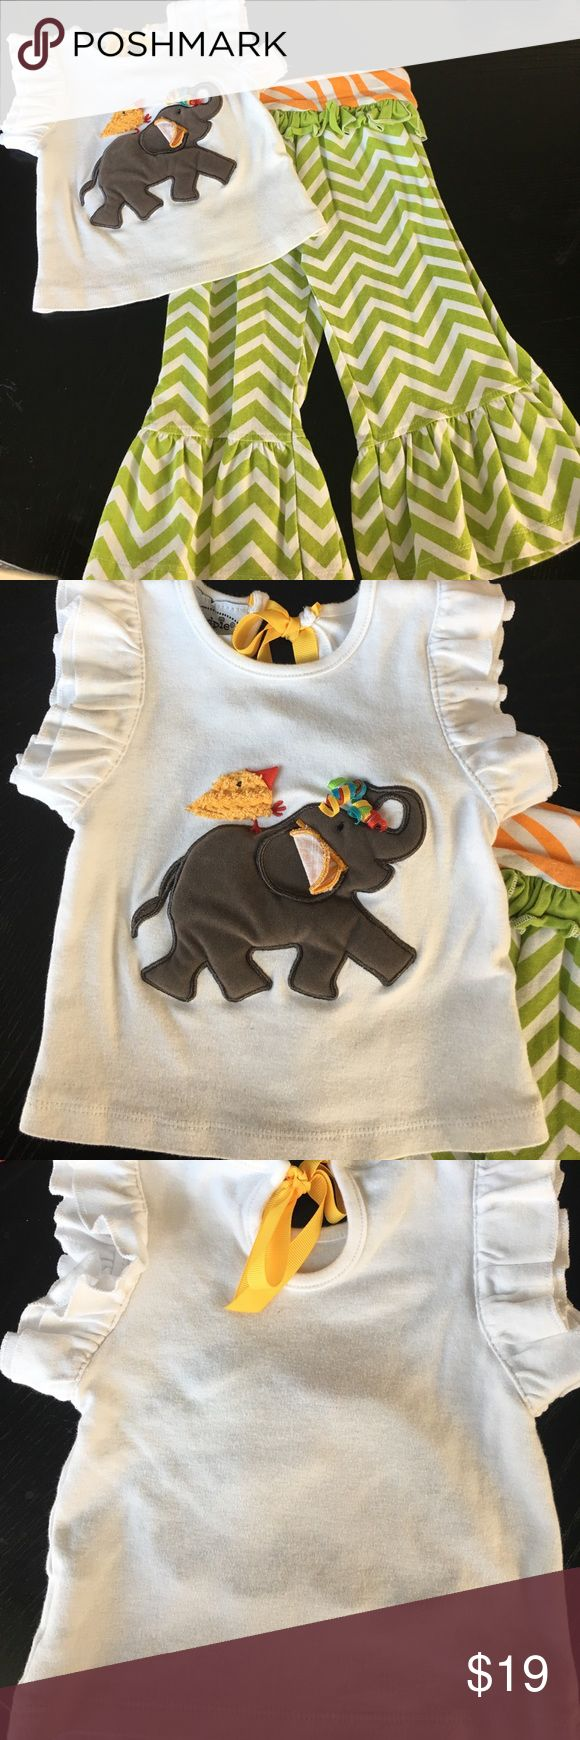 Beautiful Mud Pie Chevron Outfit Gorgeous Mud Pie chevron outfit. It is in excellent condition. Mud Pie Matching Sets